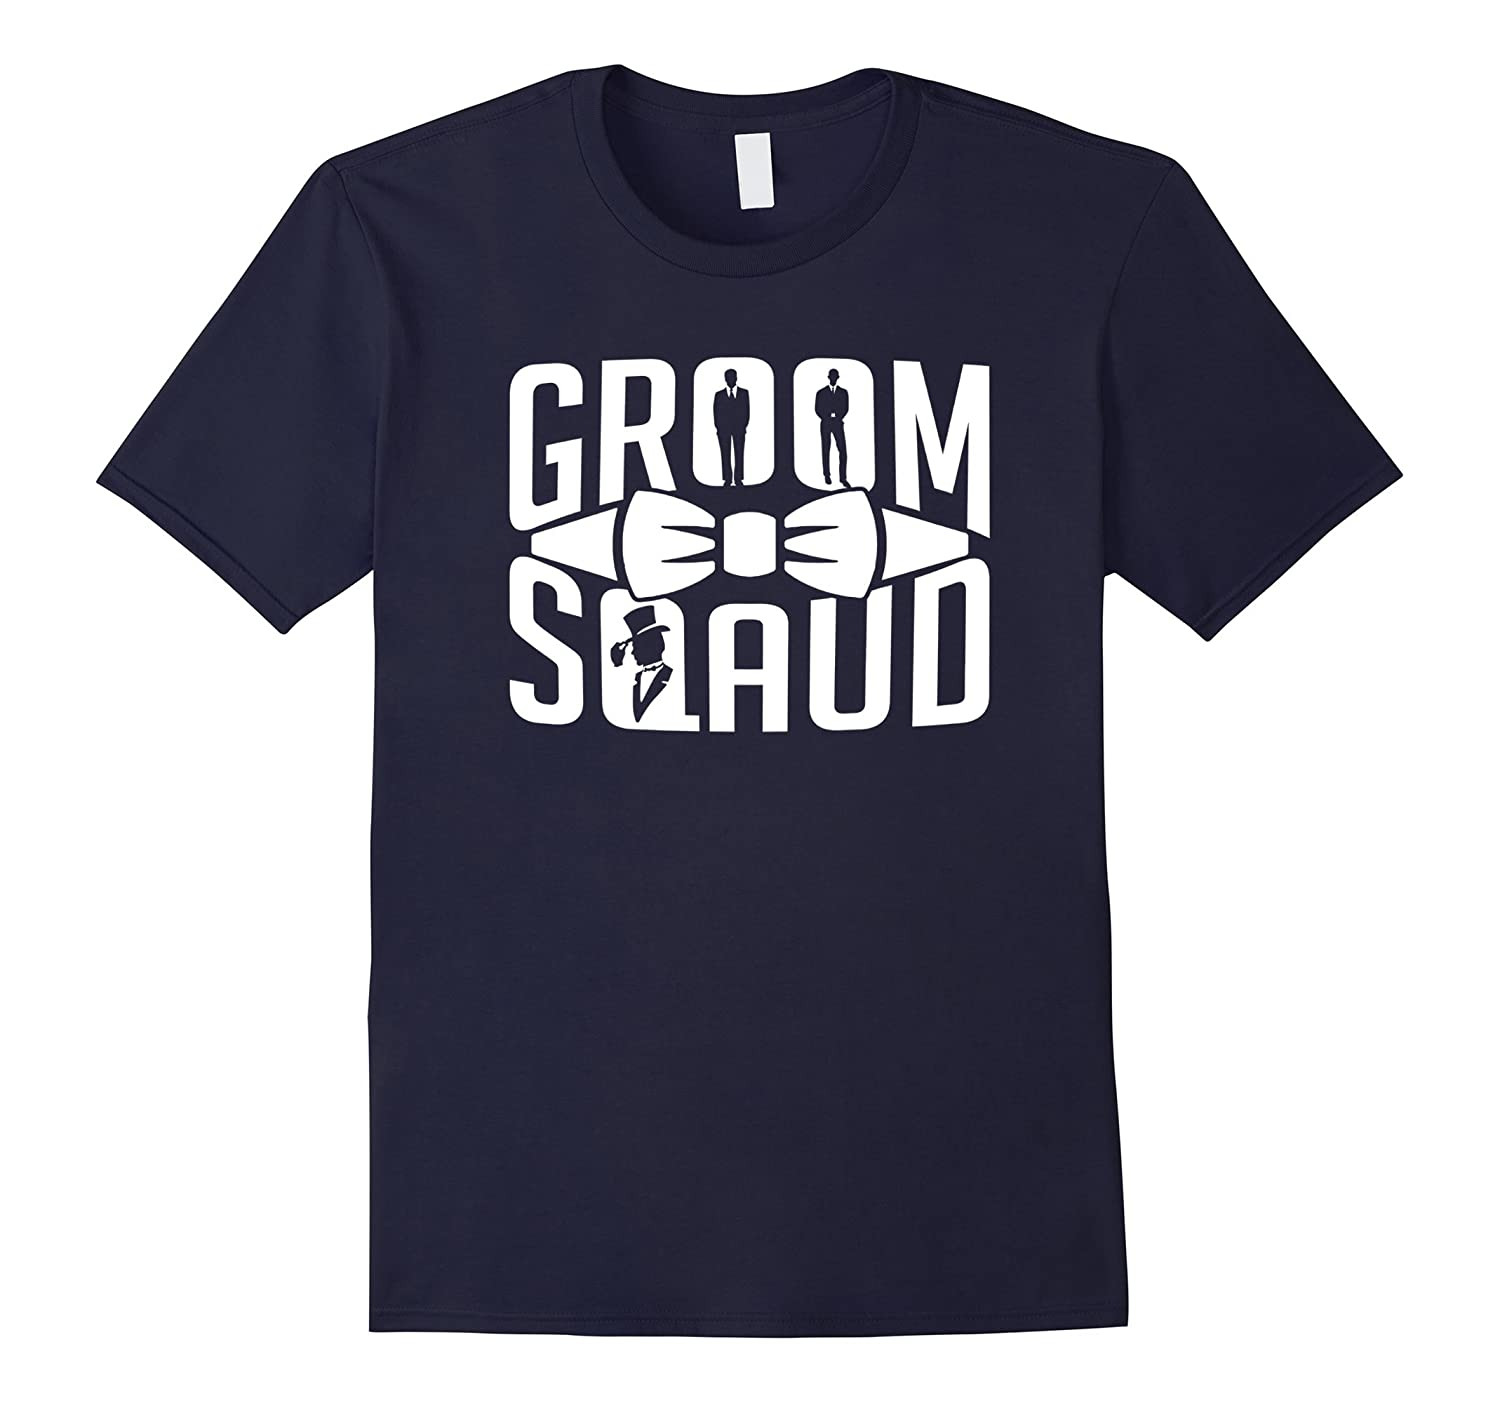 Bachelor Party or Wedding Tshirt Groom Squad Groomsmen-FL